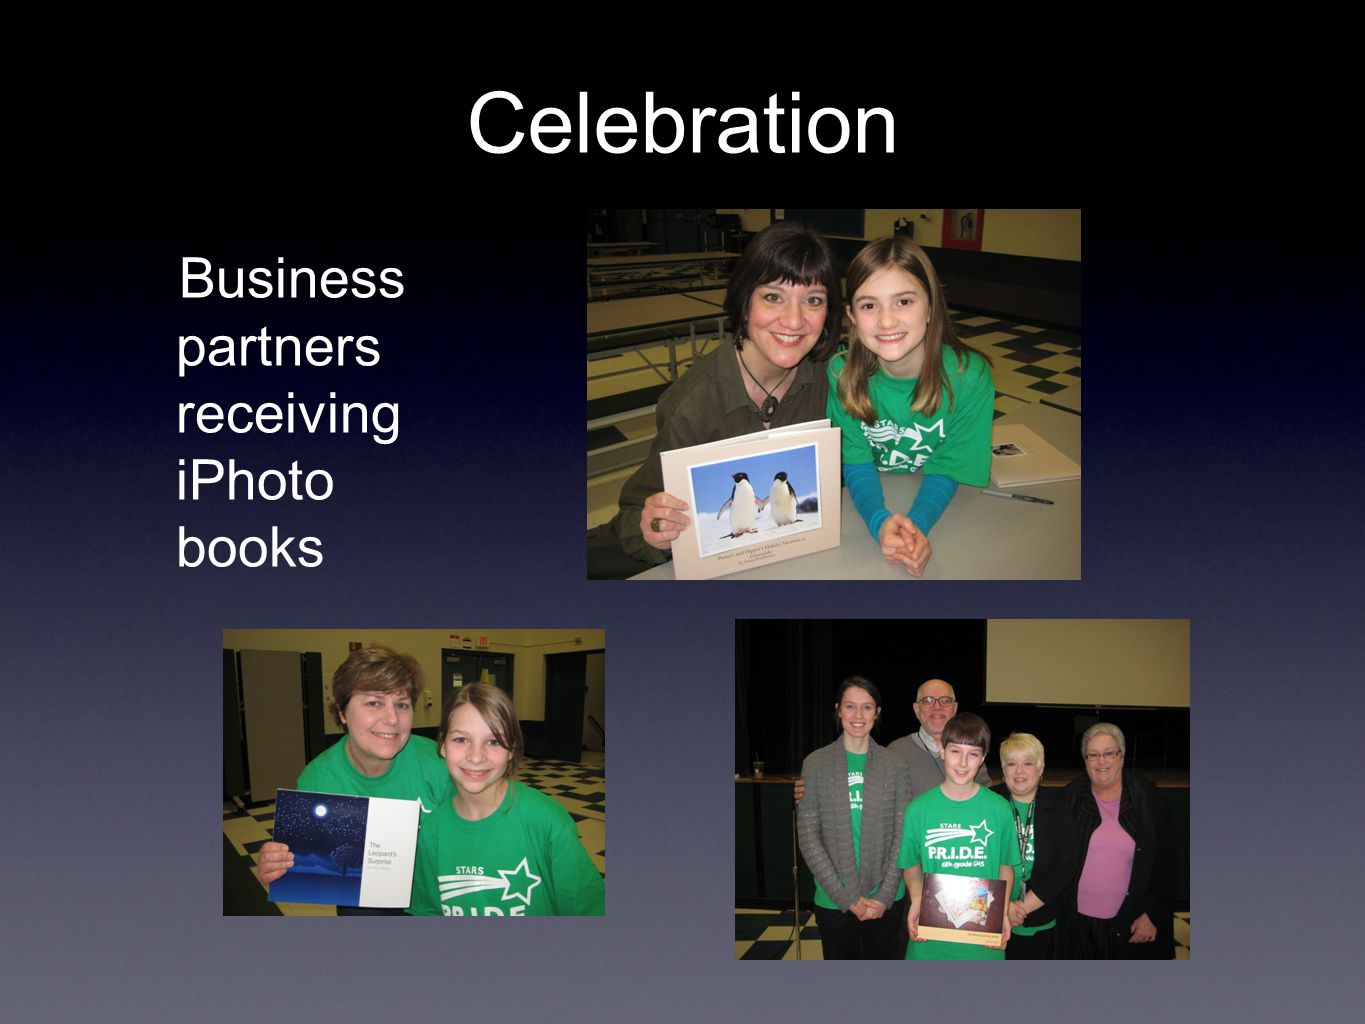 Business partners receiving iPhoto books Celebration